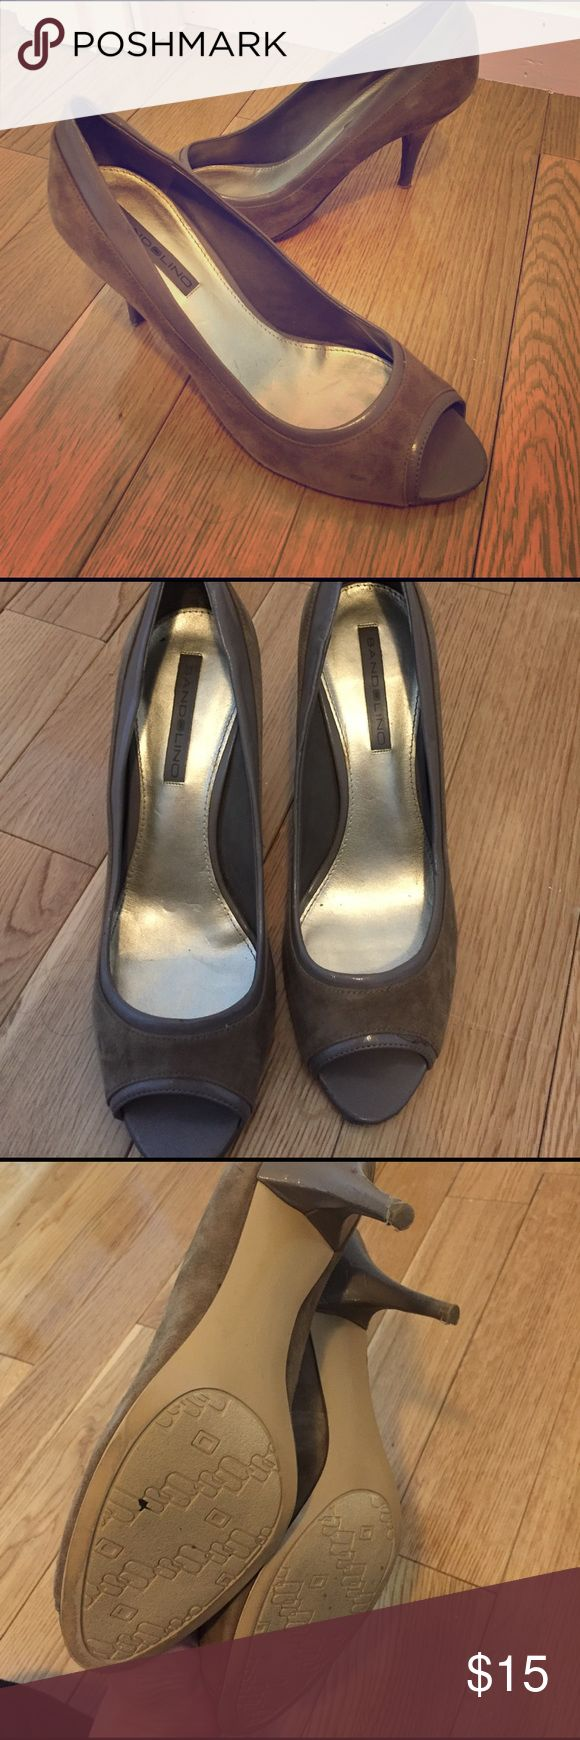 Taupe suede peep toe pumps Good condition peep toes. Super comfy and great for work. Grey-taupe in color. Suede and man made upper. Wear Is shown in pics! Bandolino Shoes Heels